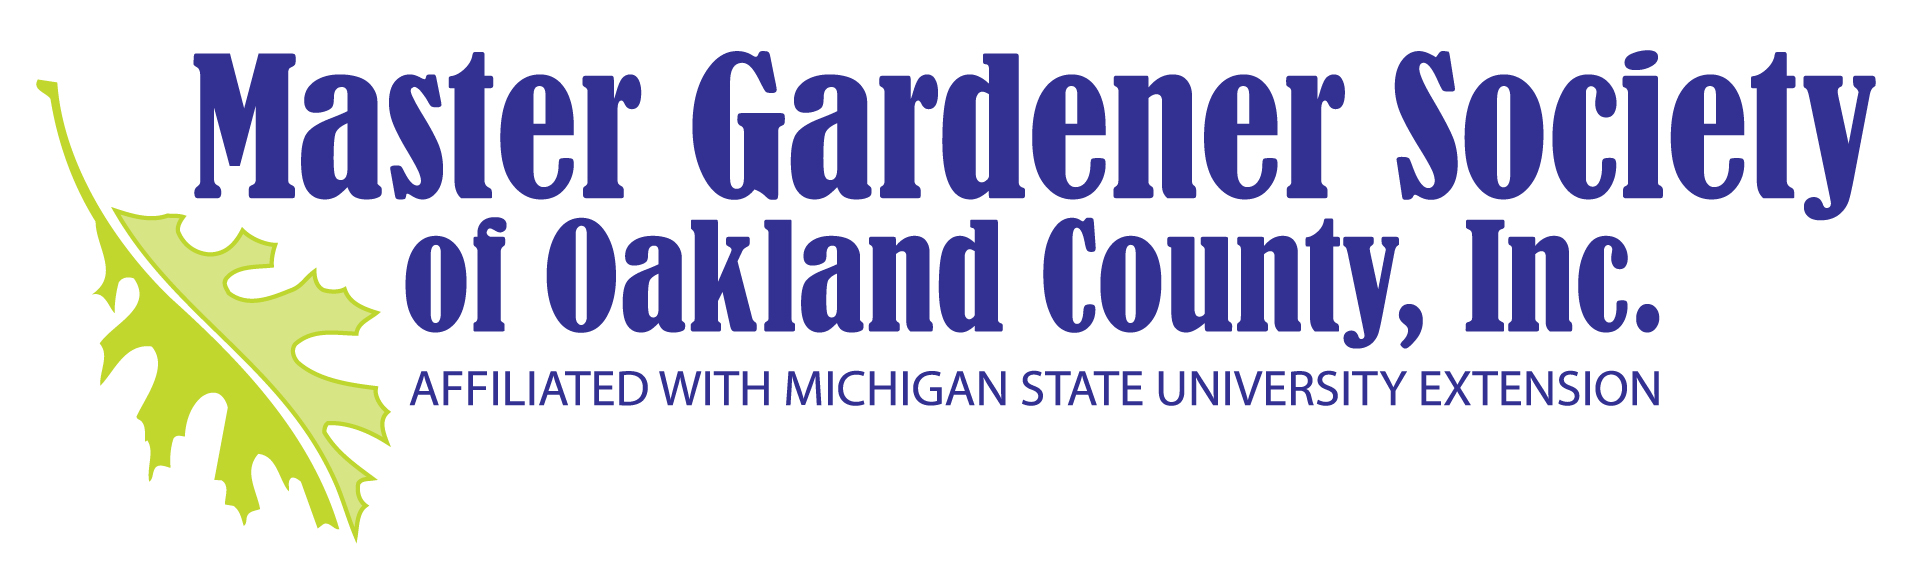 Master Gardener Society of Oakland County